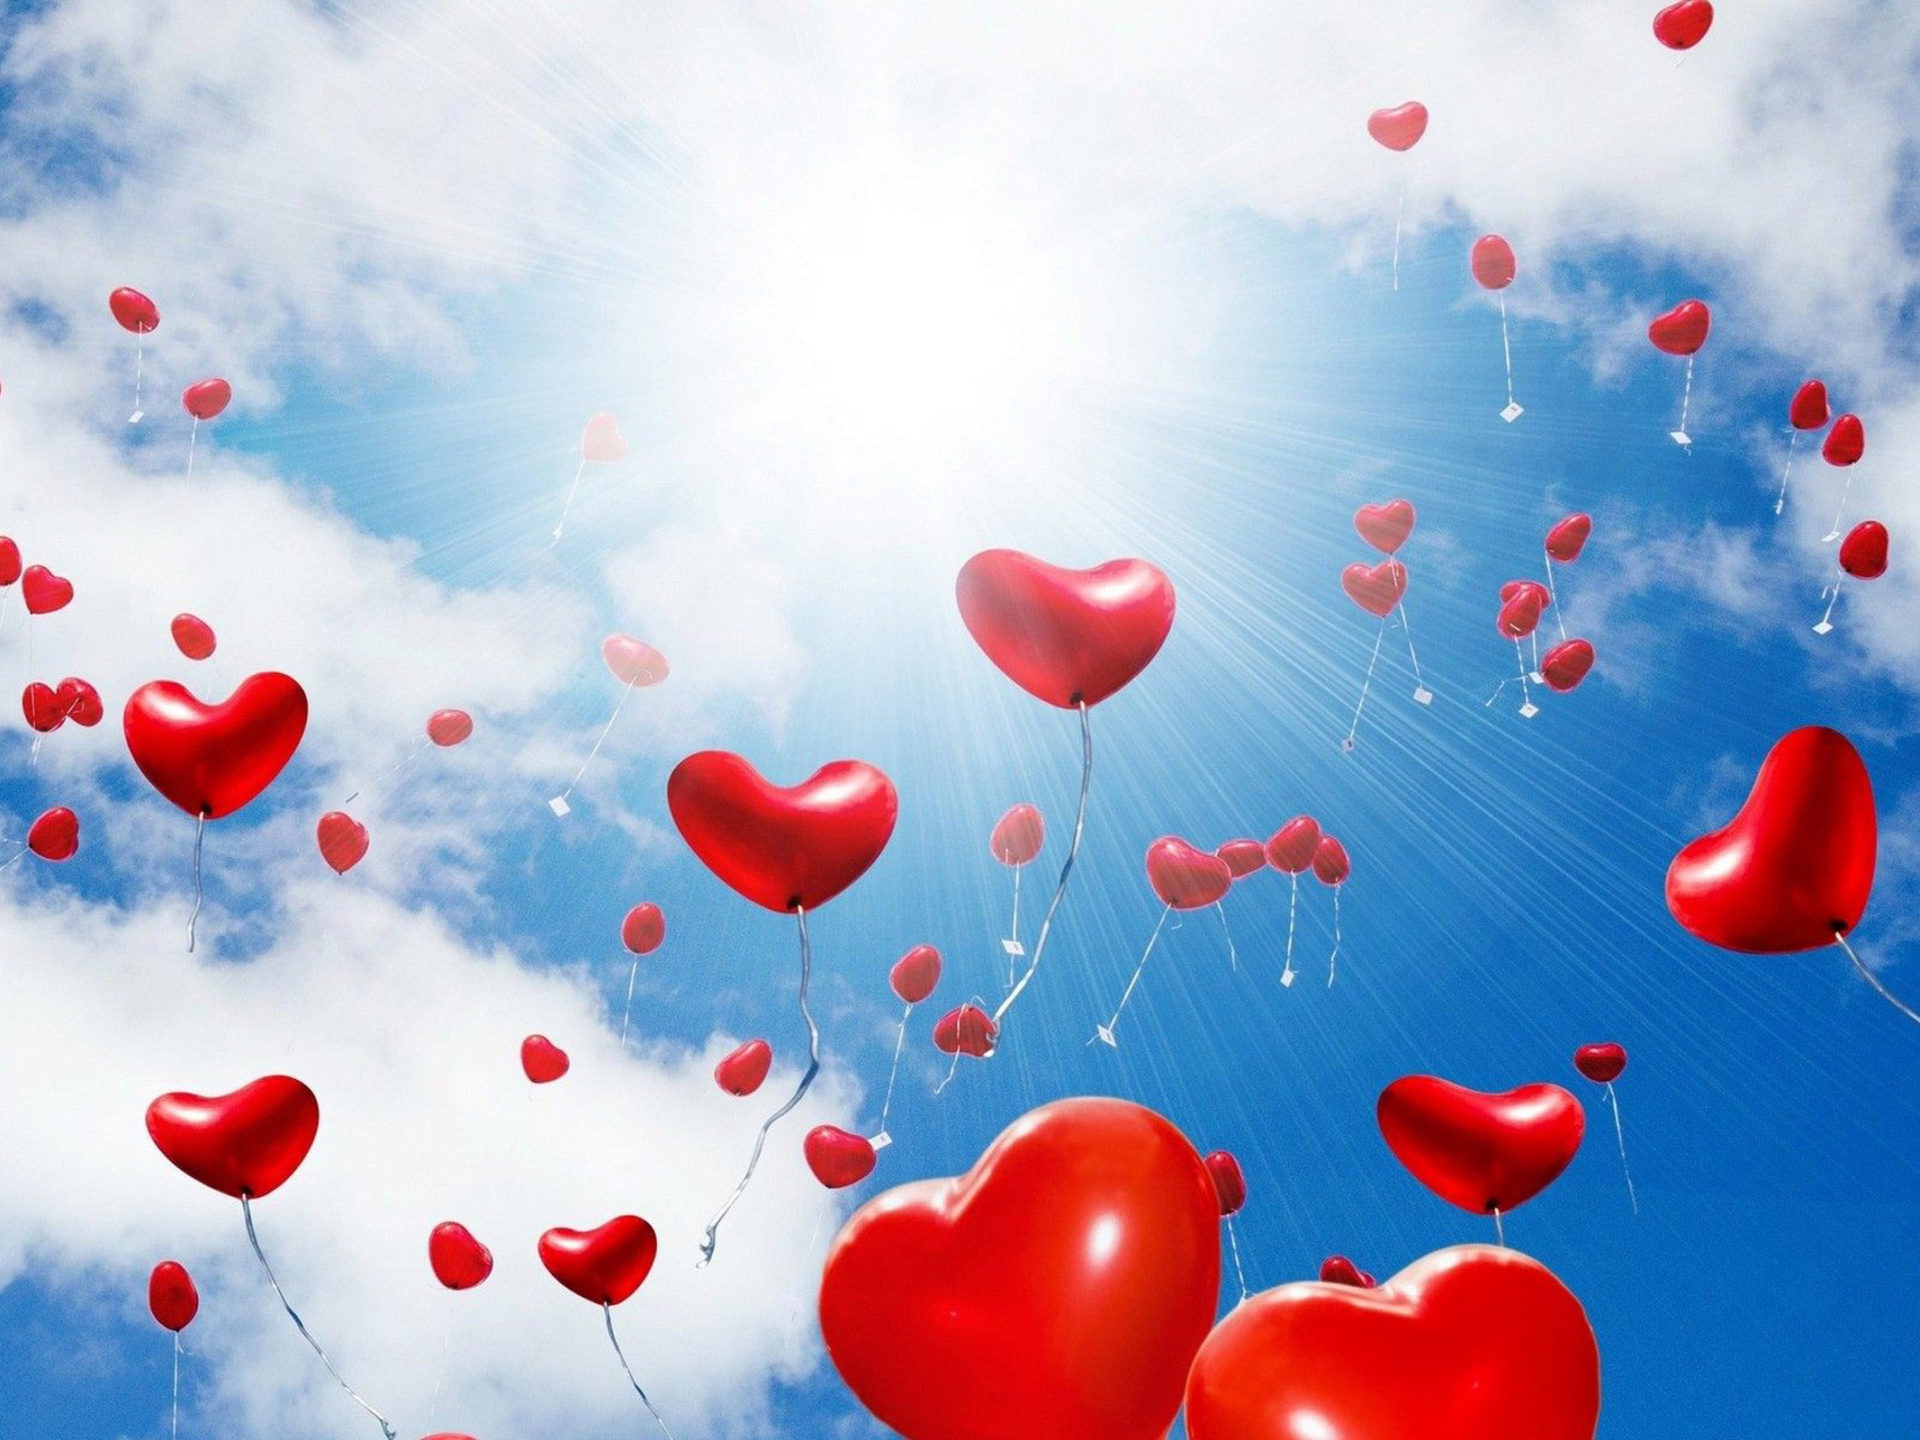 A Happy Girl Wallpaper Red Balloons In The Shape Of A Heart Sunlight Blue Sky